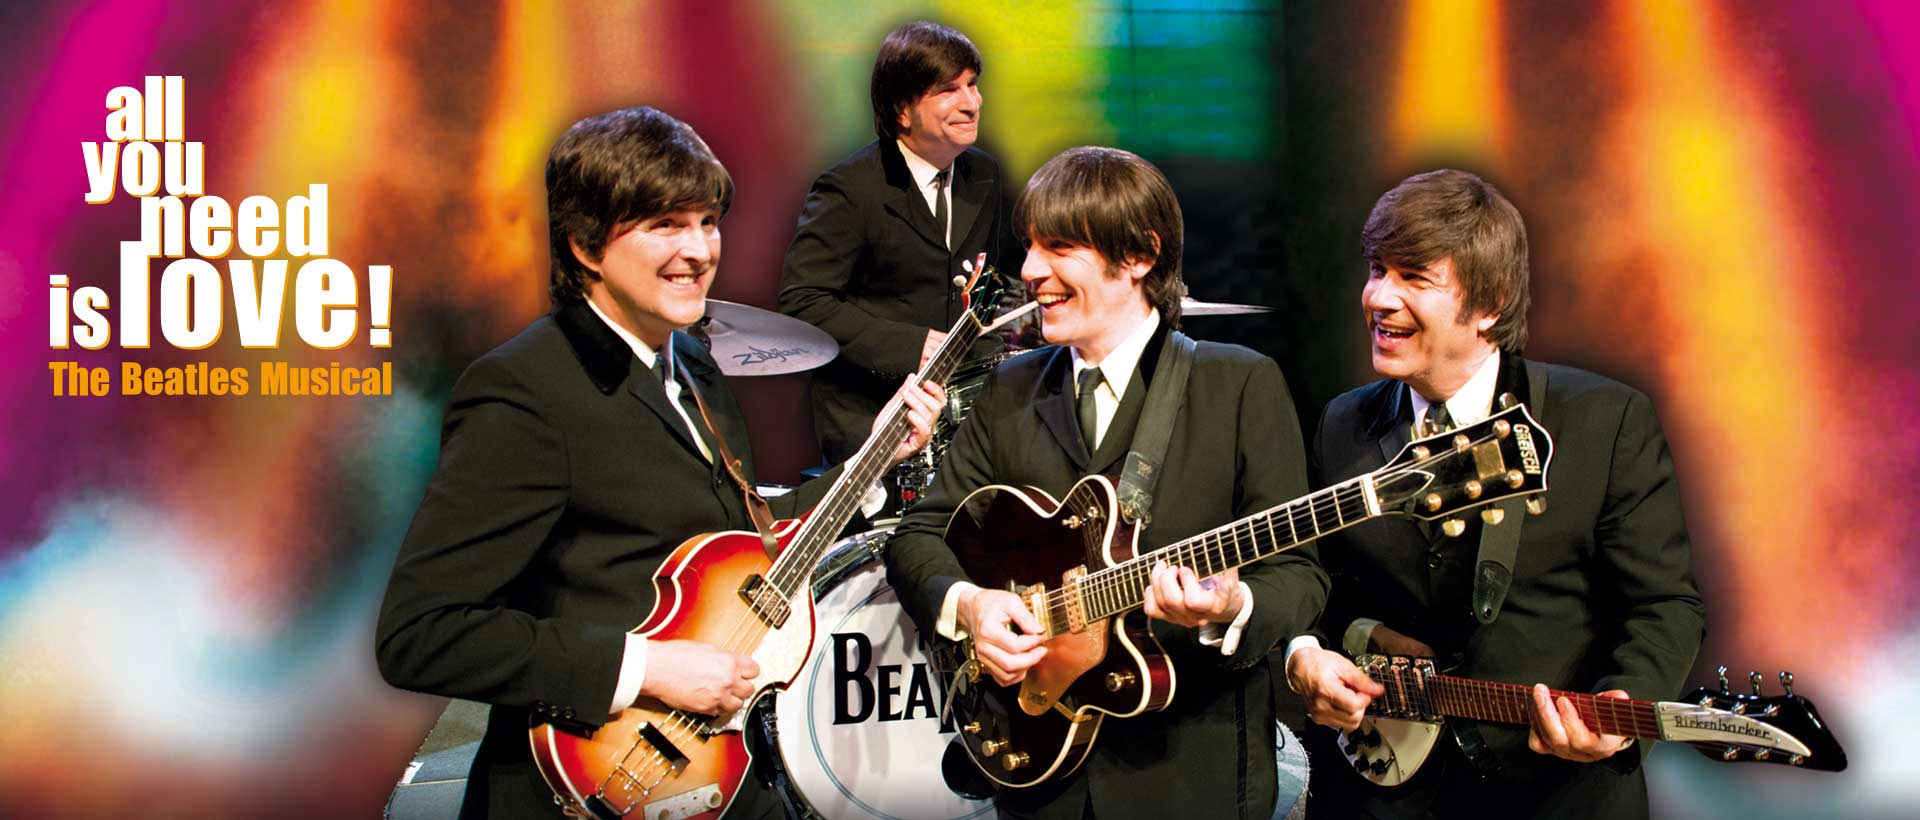 all you need is love - The Beatles Musical 04/23/ - 05/24/2020